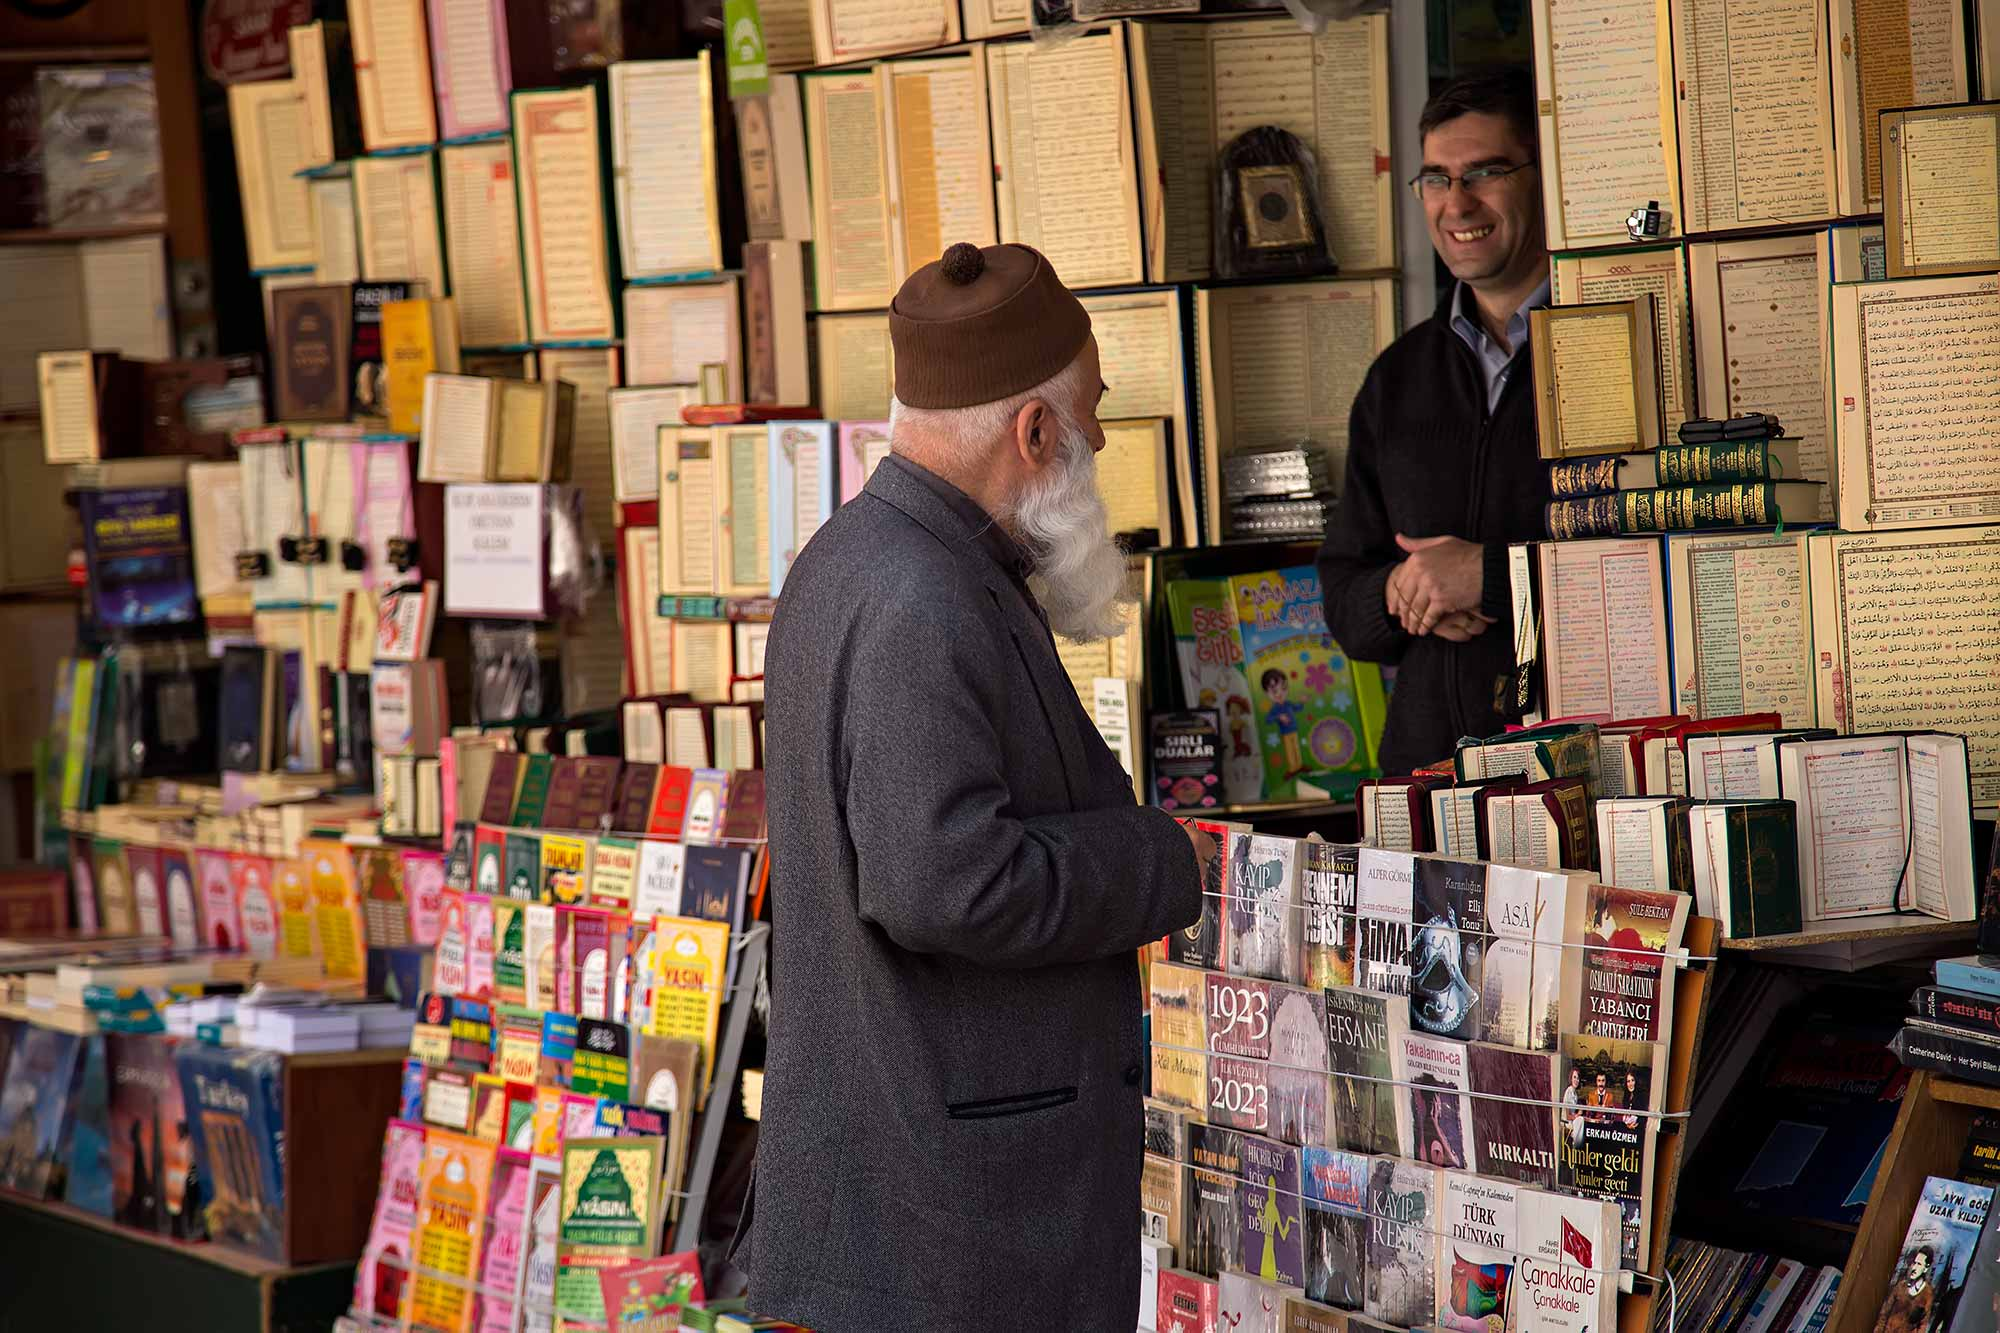 The Book Market at the Grand Bazaar in Istanbul, Turkey. © Ulli Maier & Nisa Maier